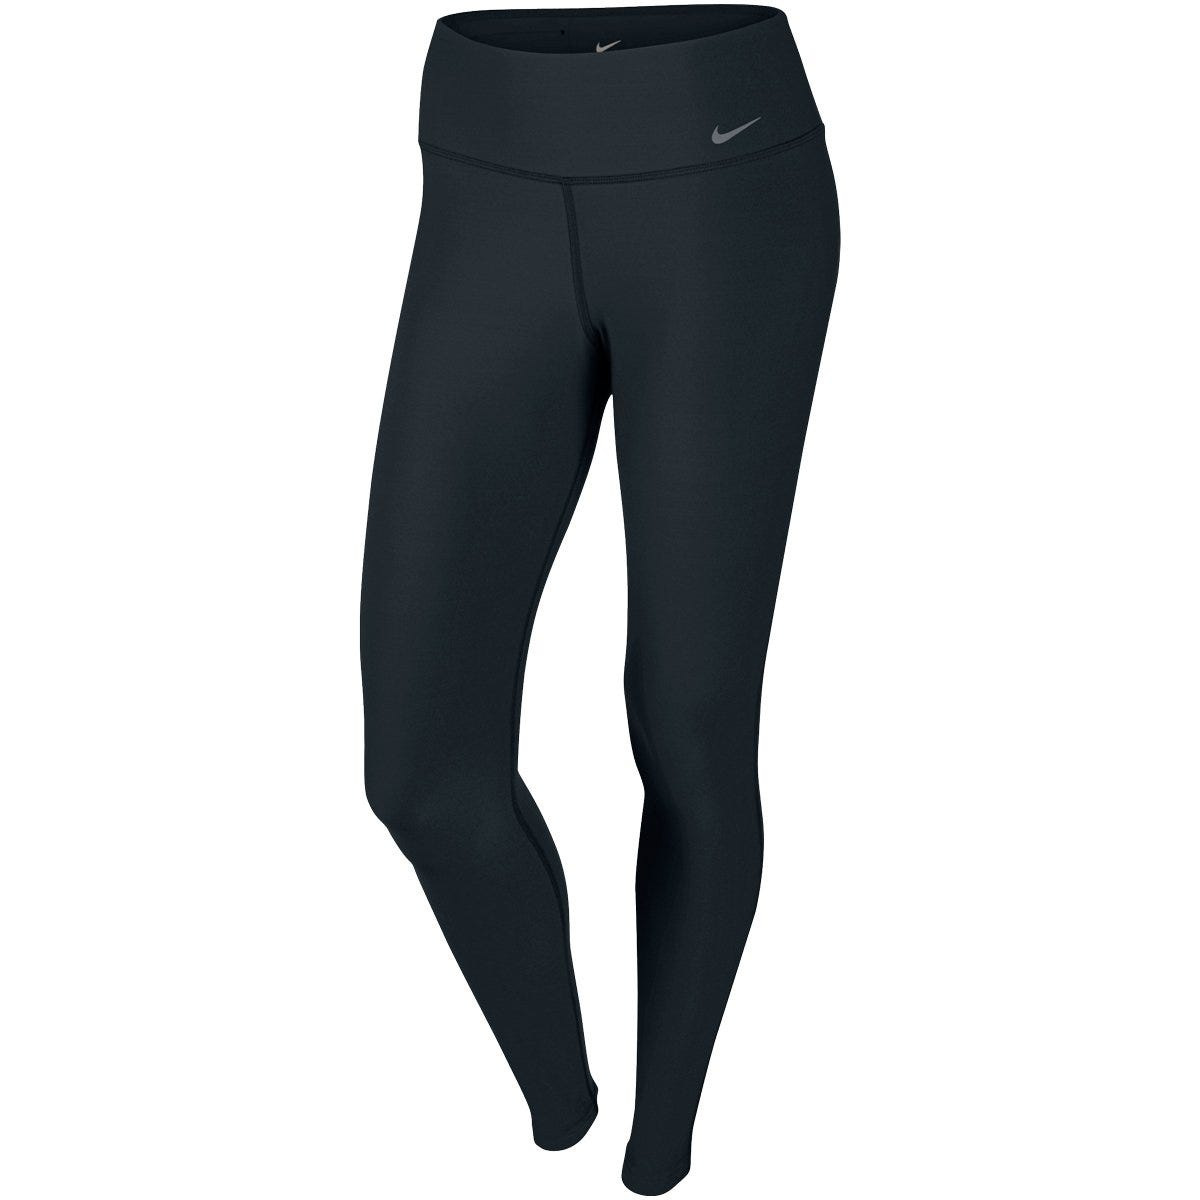 Legend 2.0 Softball Training Pant by Nike; Womens L in Black/Cool Gray